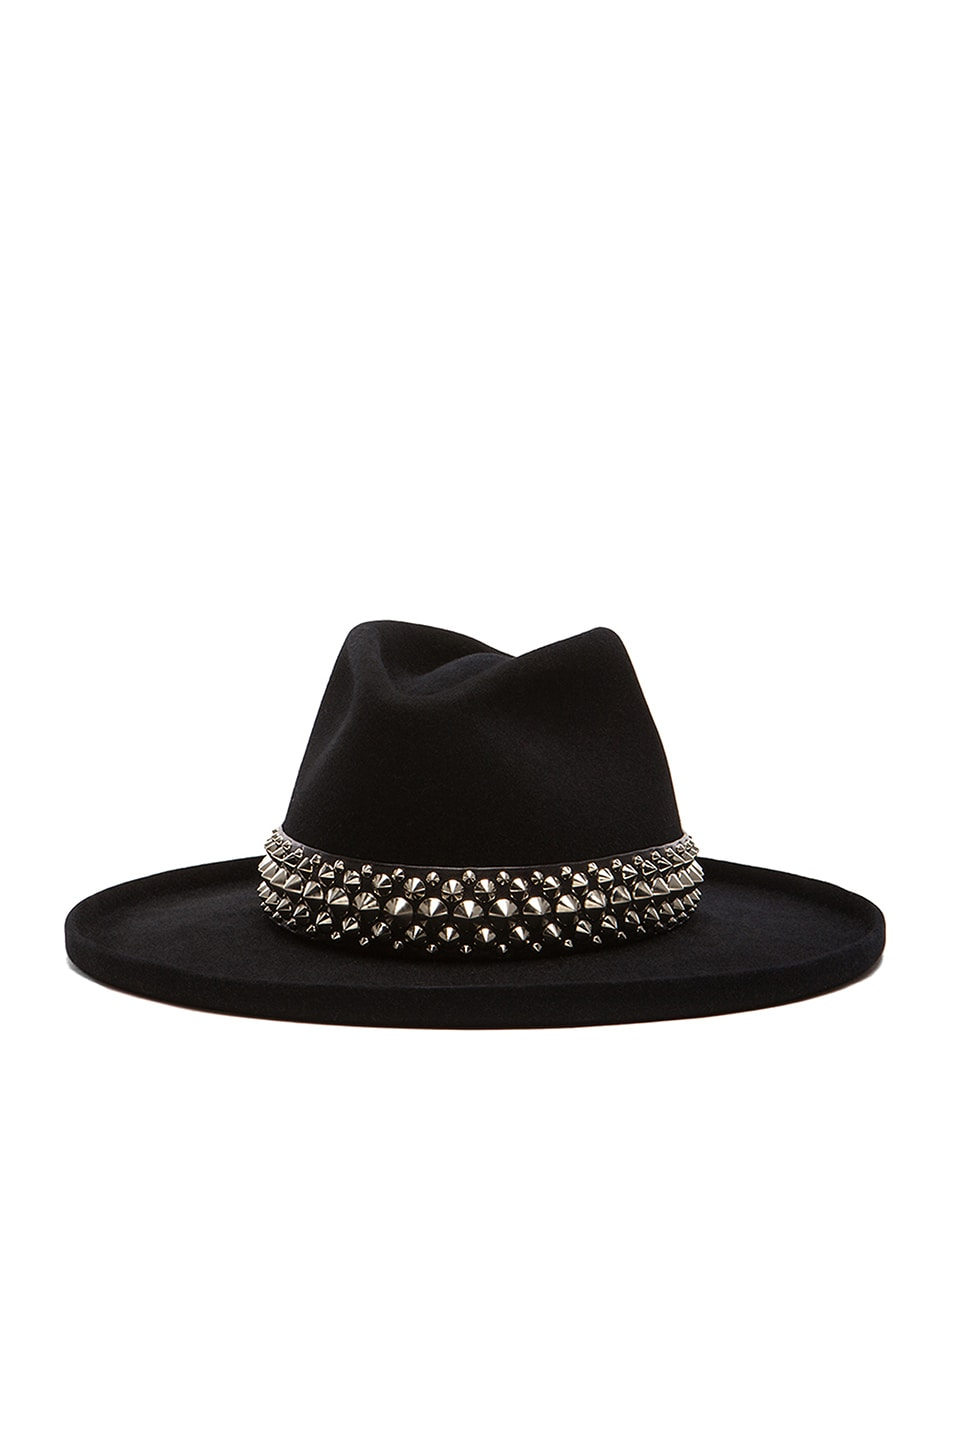 Image 2 of Gladys Tamez Millinery The Johnny Hat with Studded Band in Black